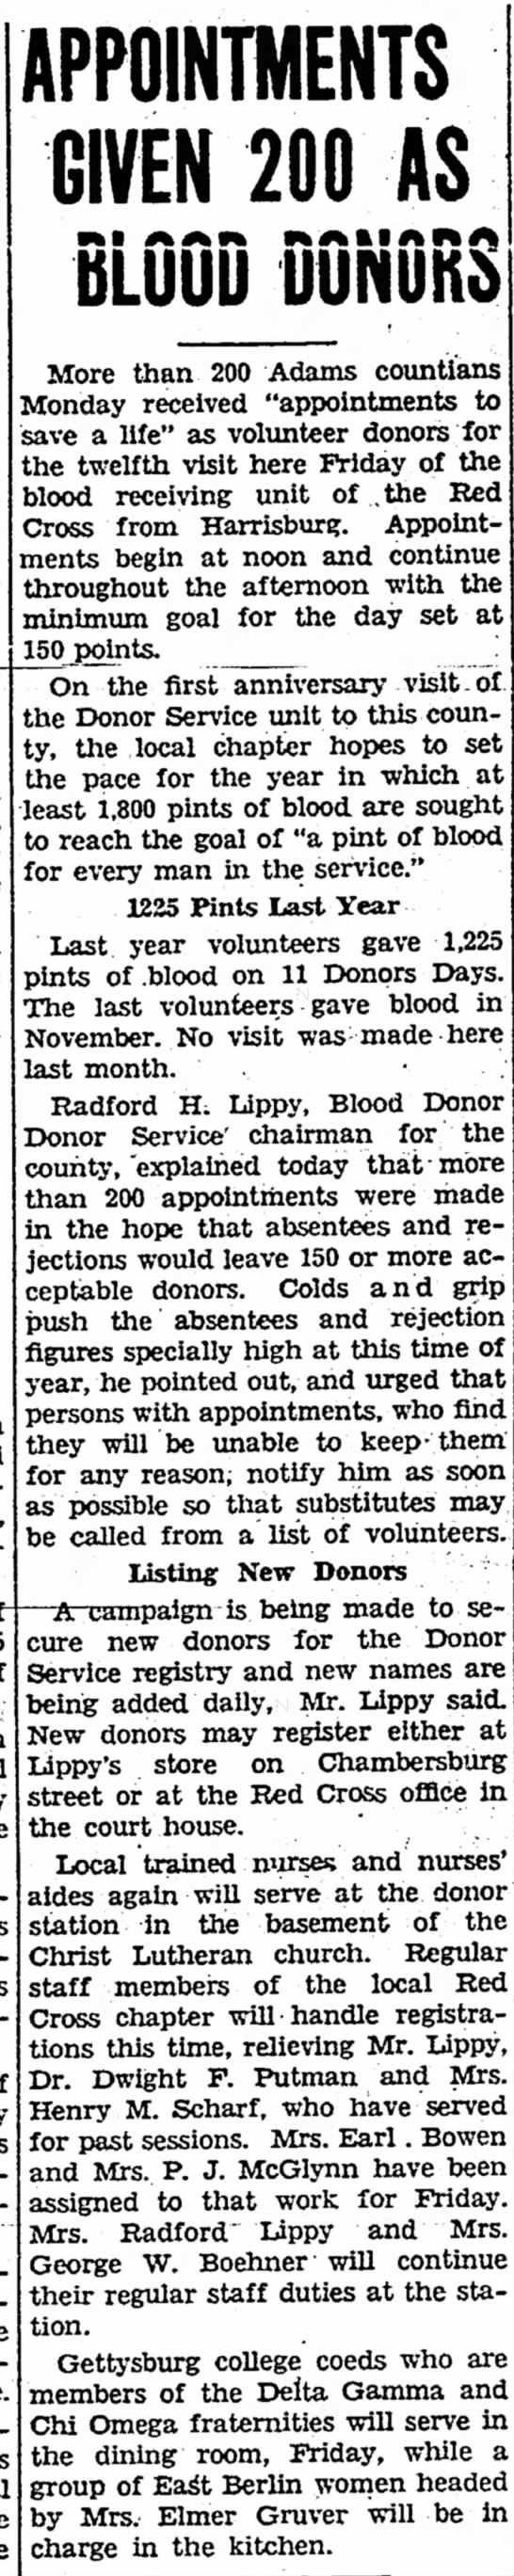 Blood donations 1944